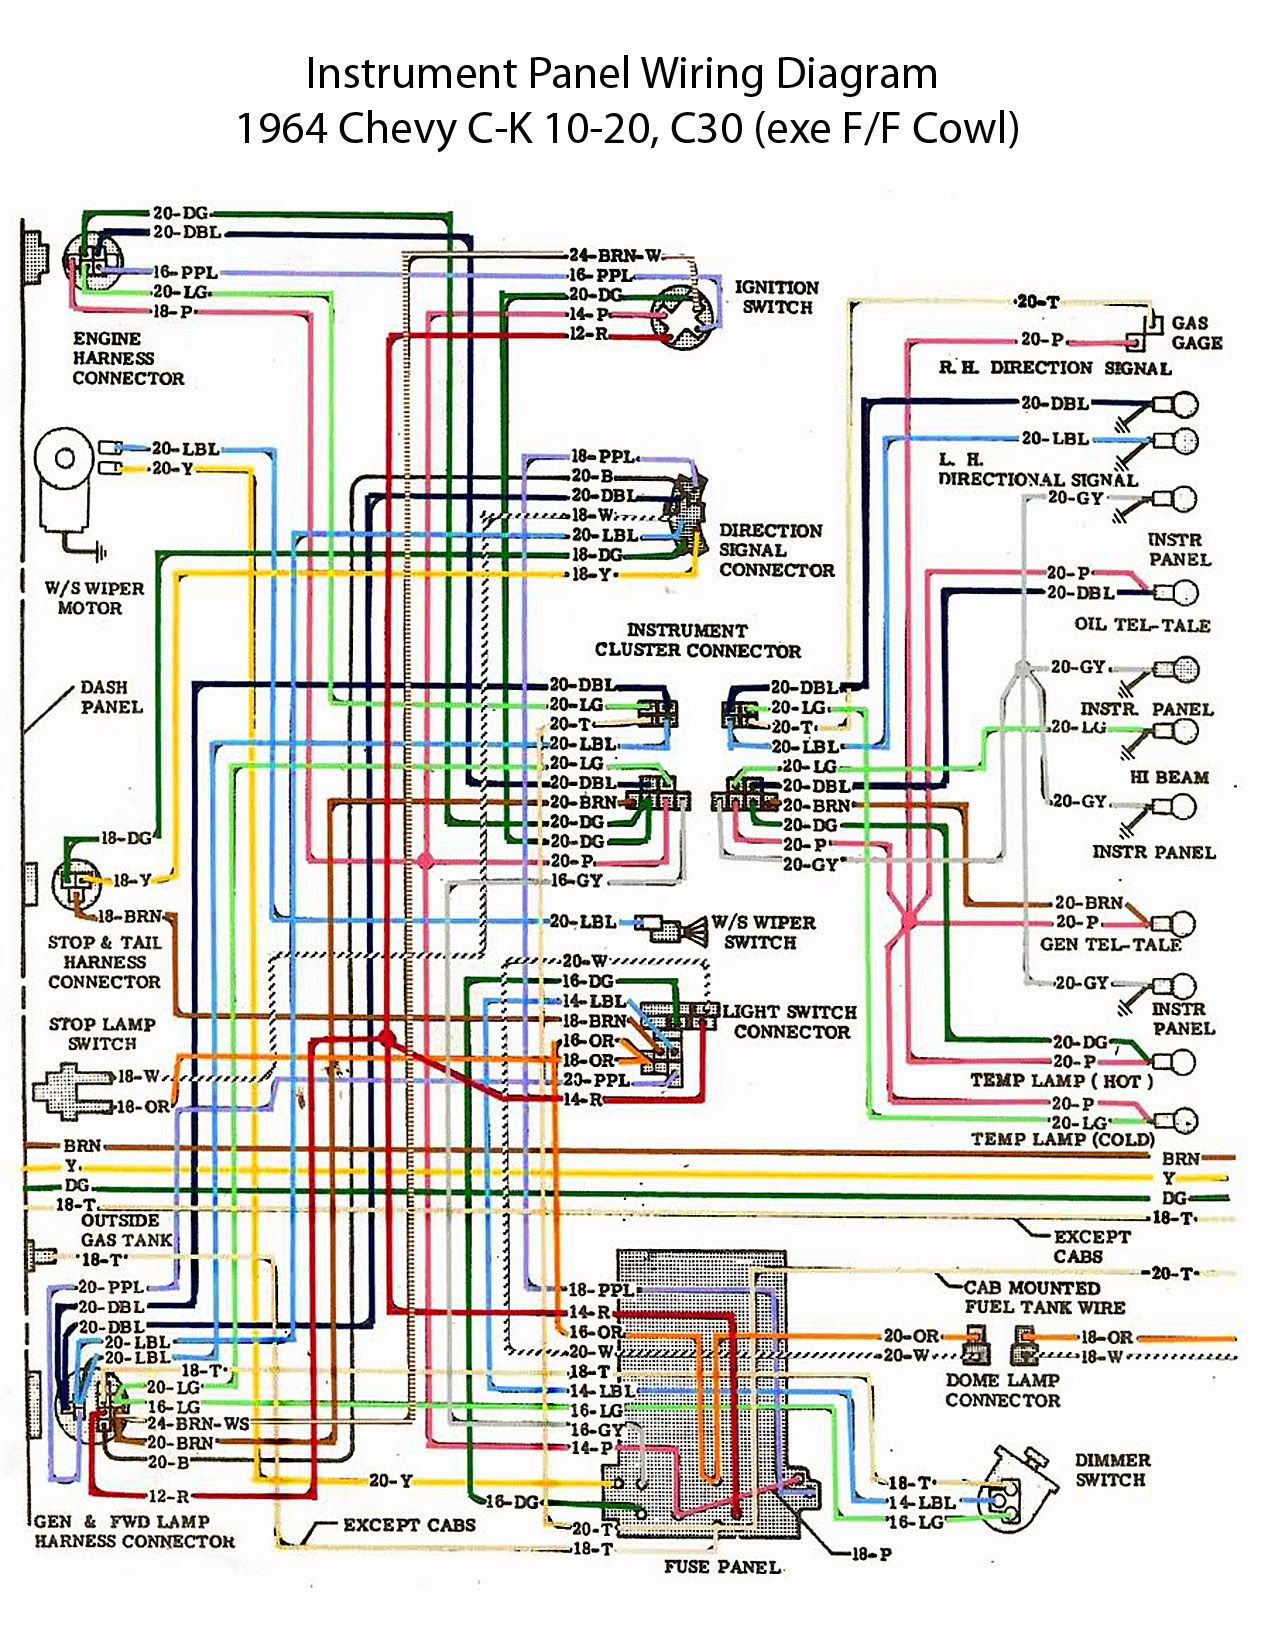 Pleasant Wiring Diagram Mitsubishi Kuda Wiring Diagrams Lol Wiring Cloud Hisonuggs Outletorg